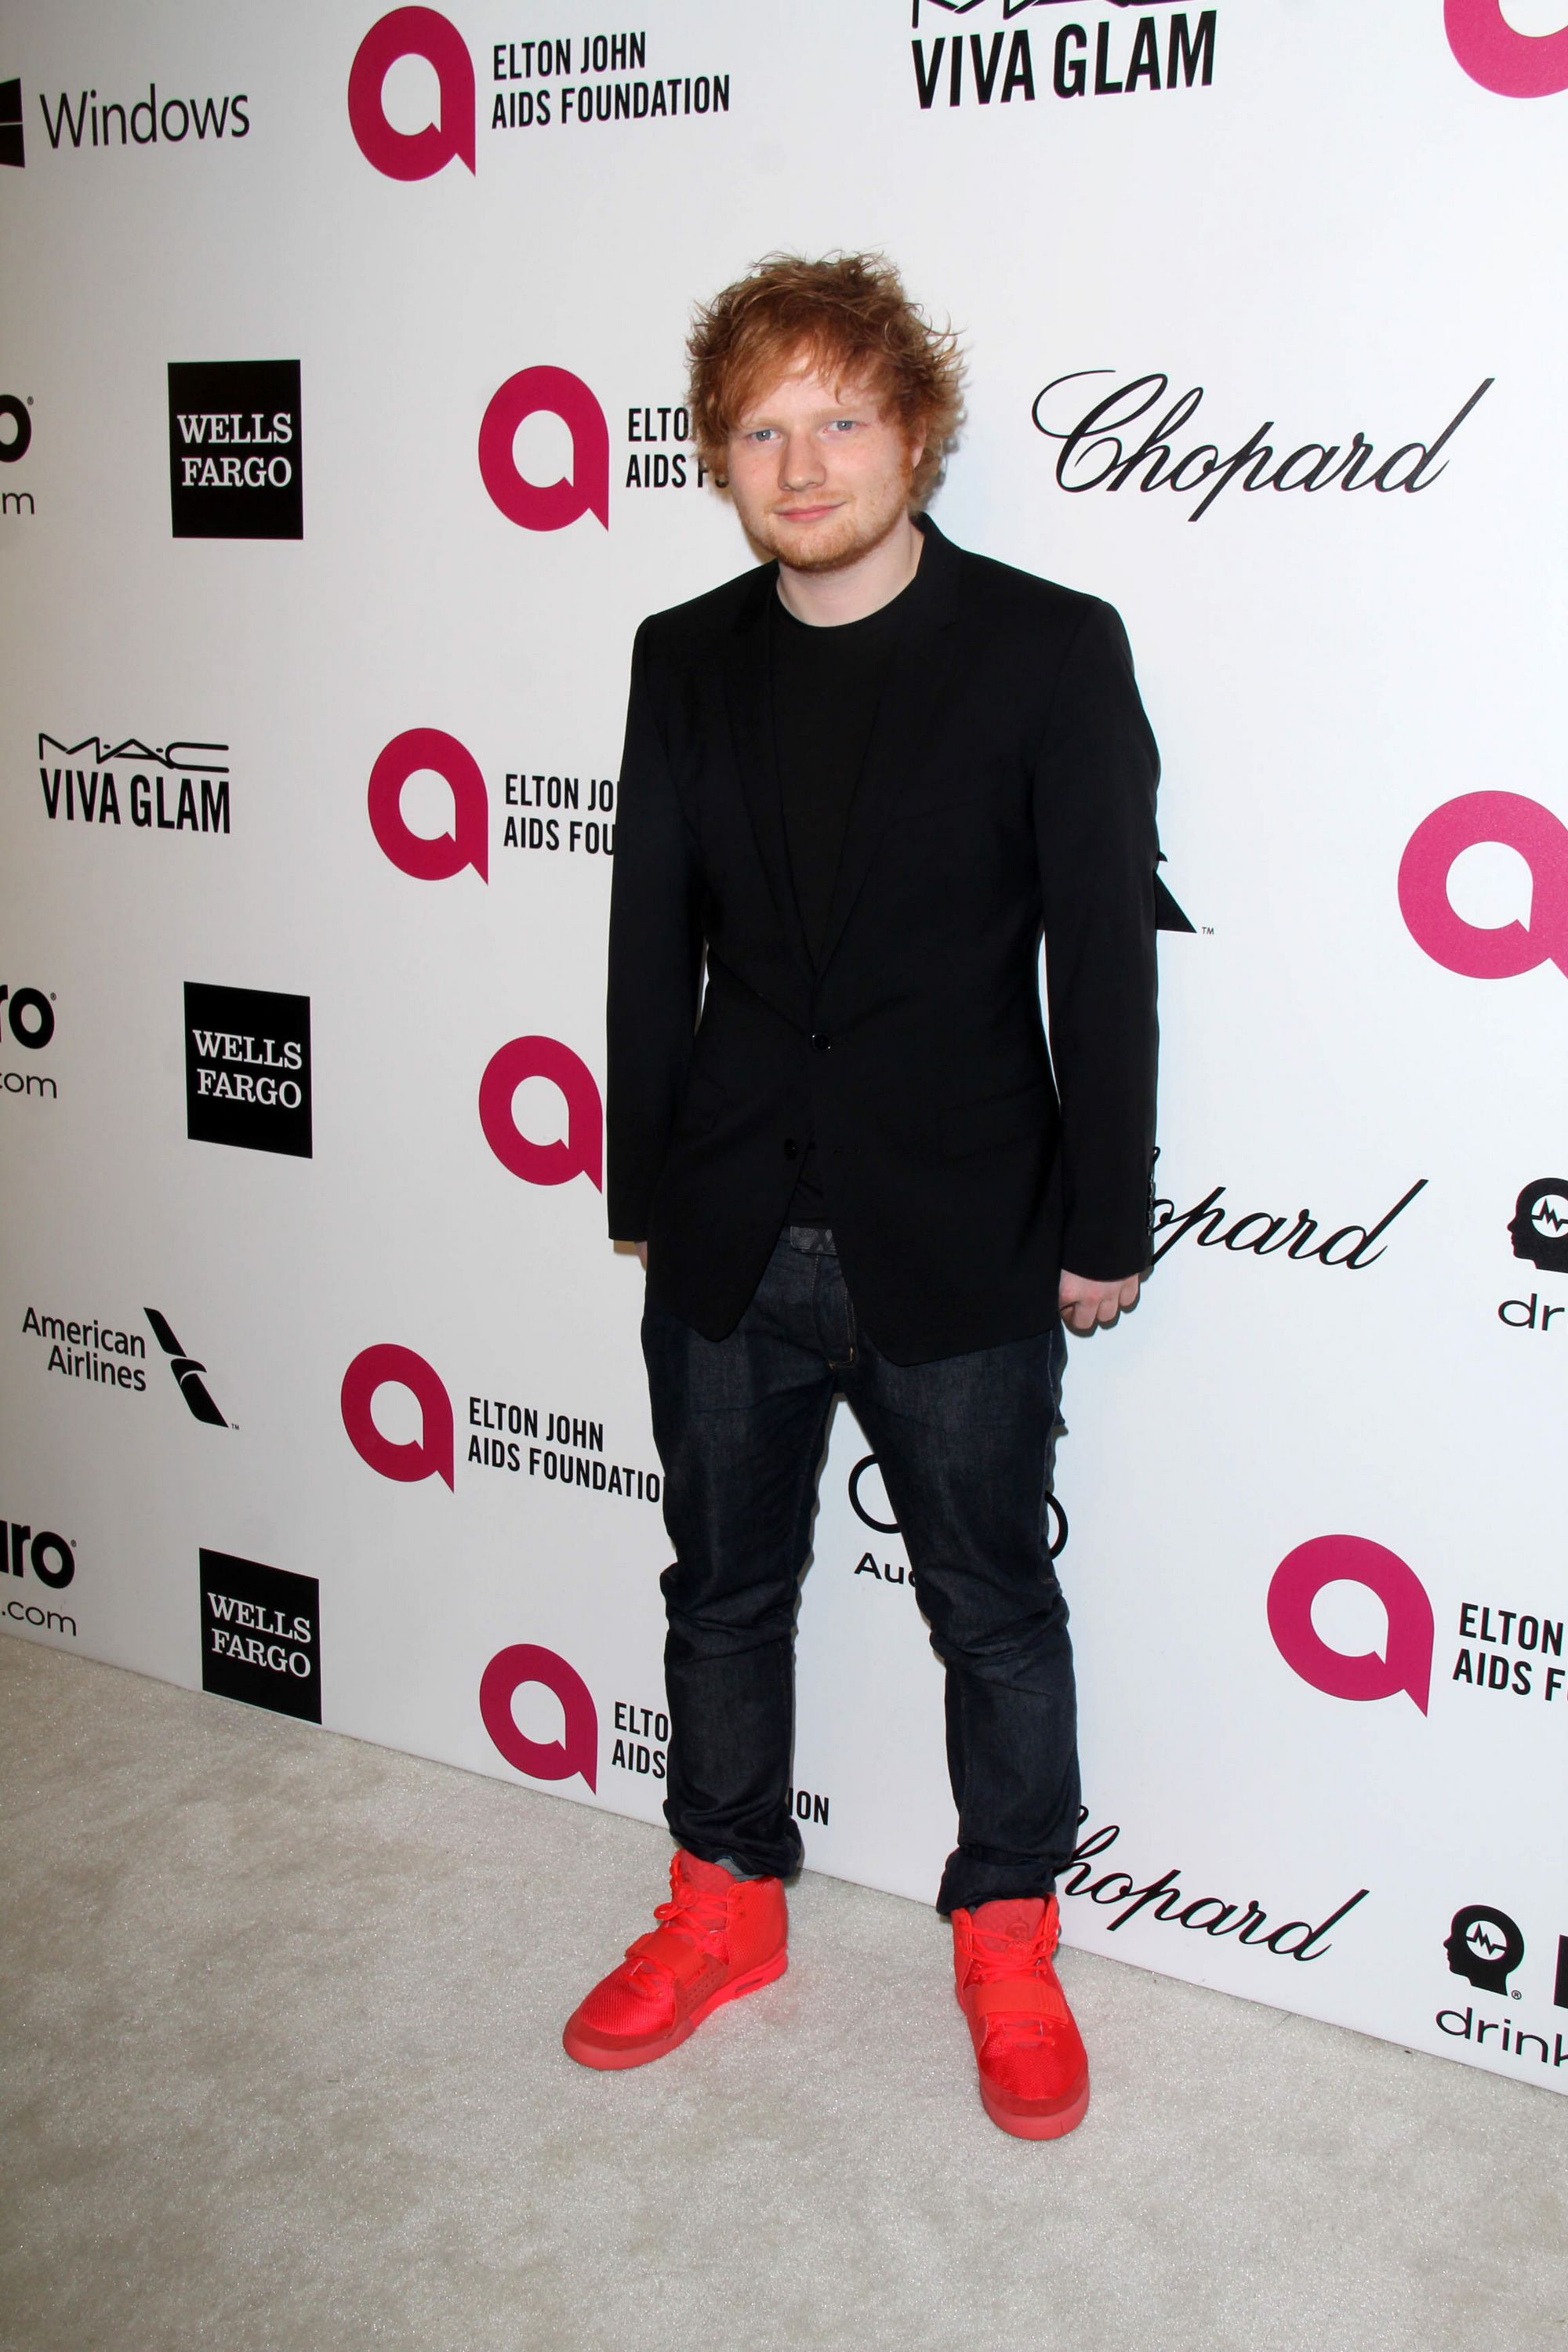 https://www.theplace.ru/archive/ed_sheeran/img/02.03.2014_22nd_annual_elton_john_aids_foundations_oscar_viewing_party_(5).jpg